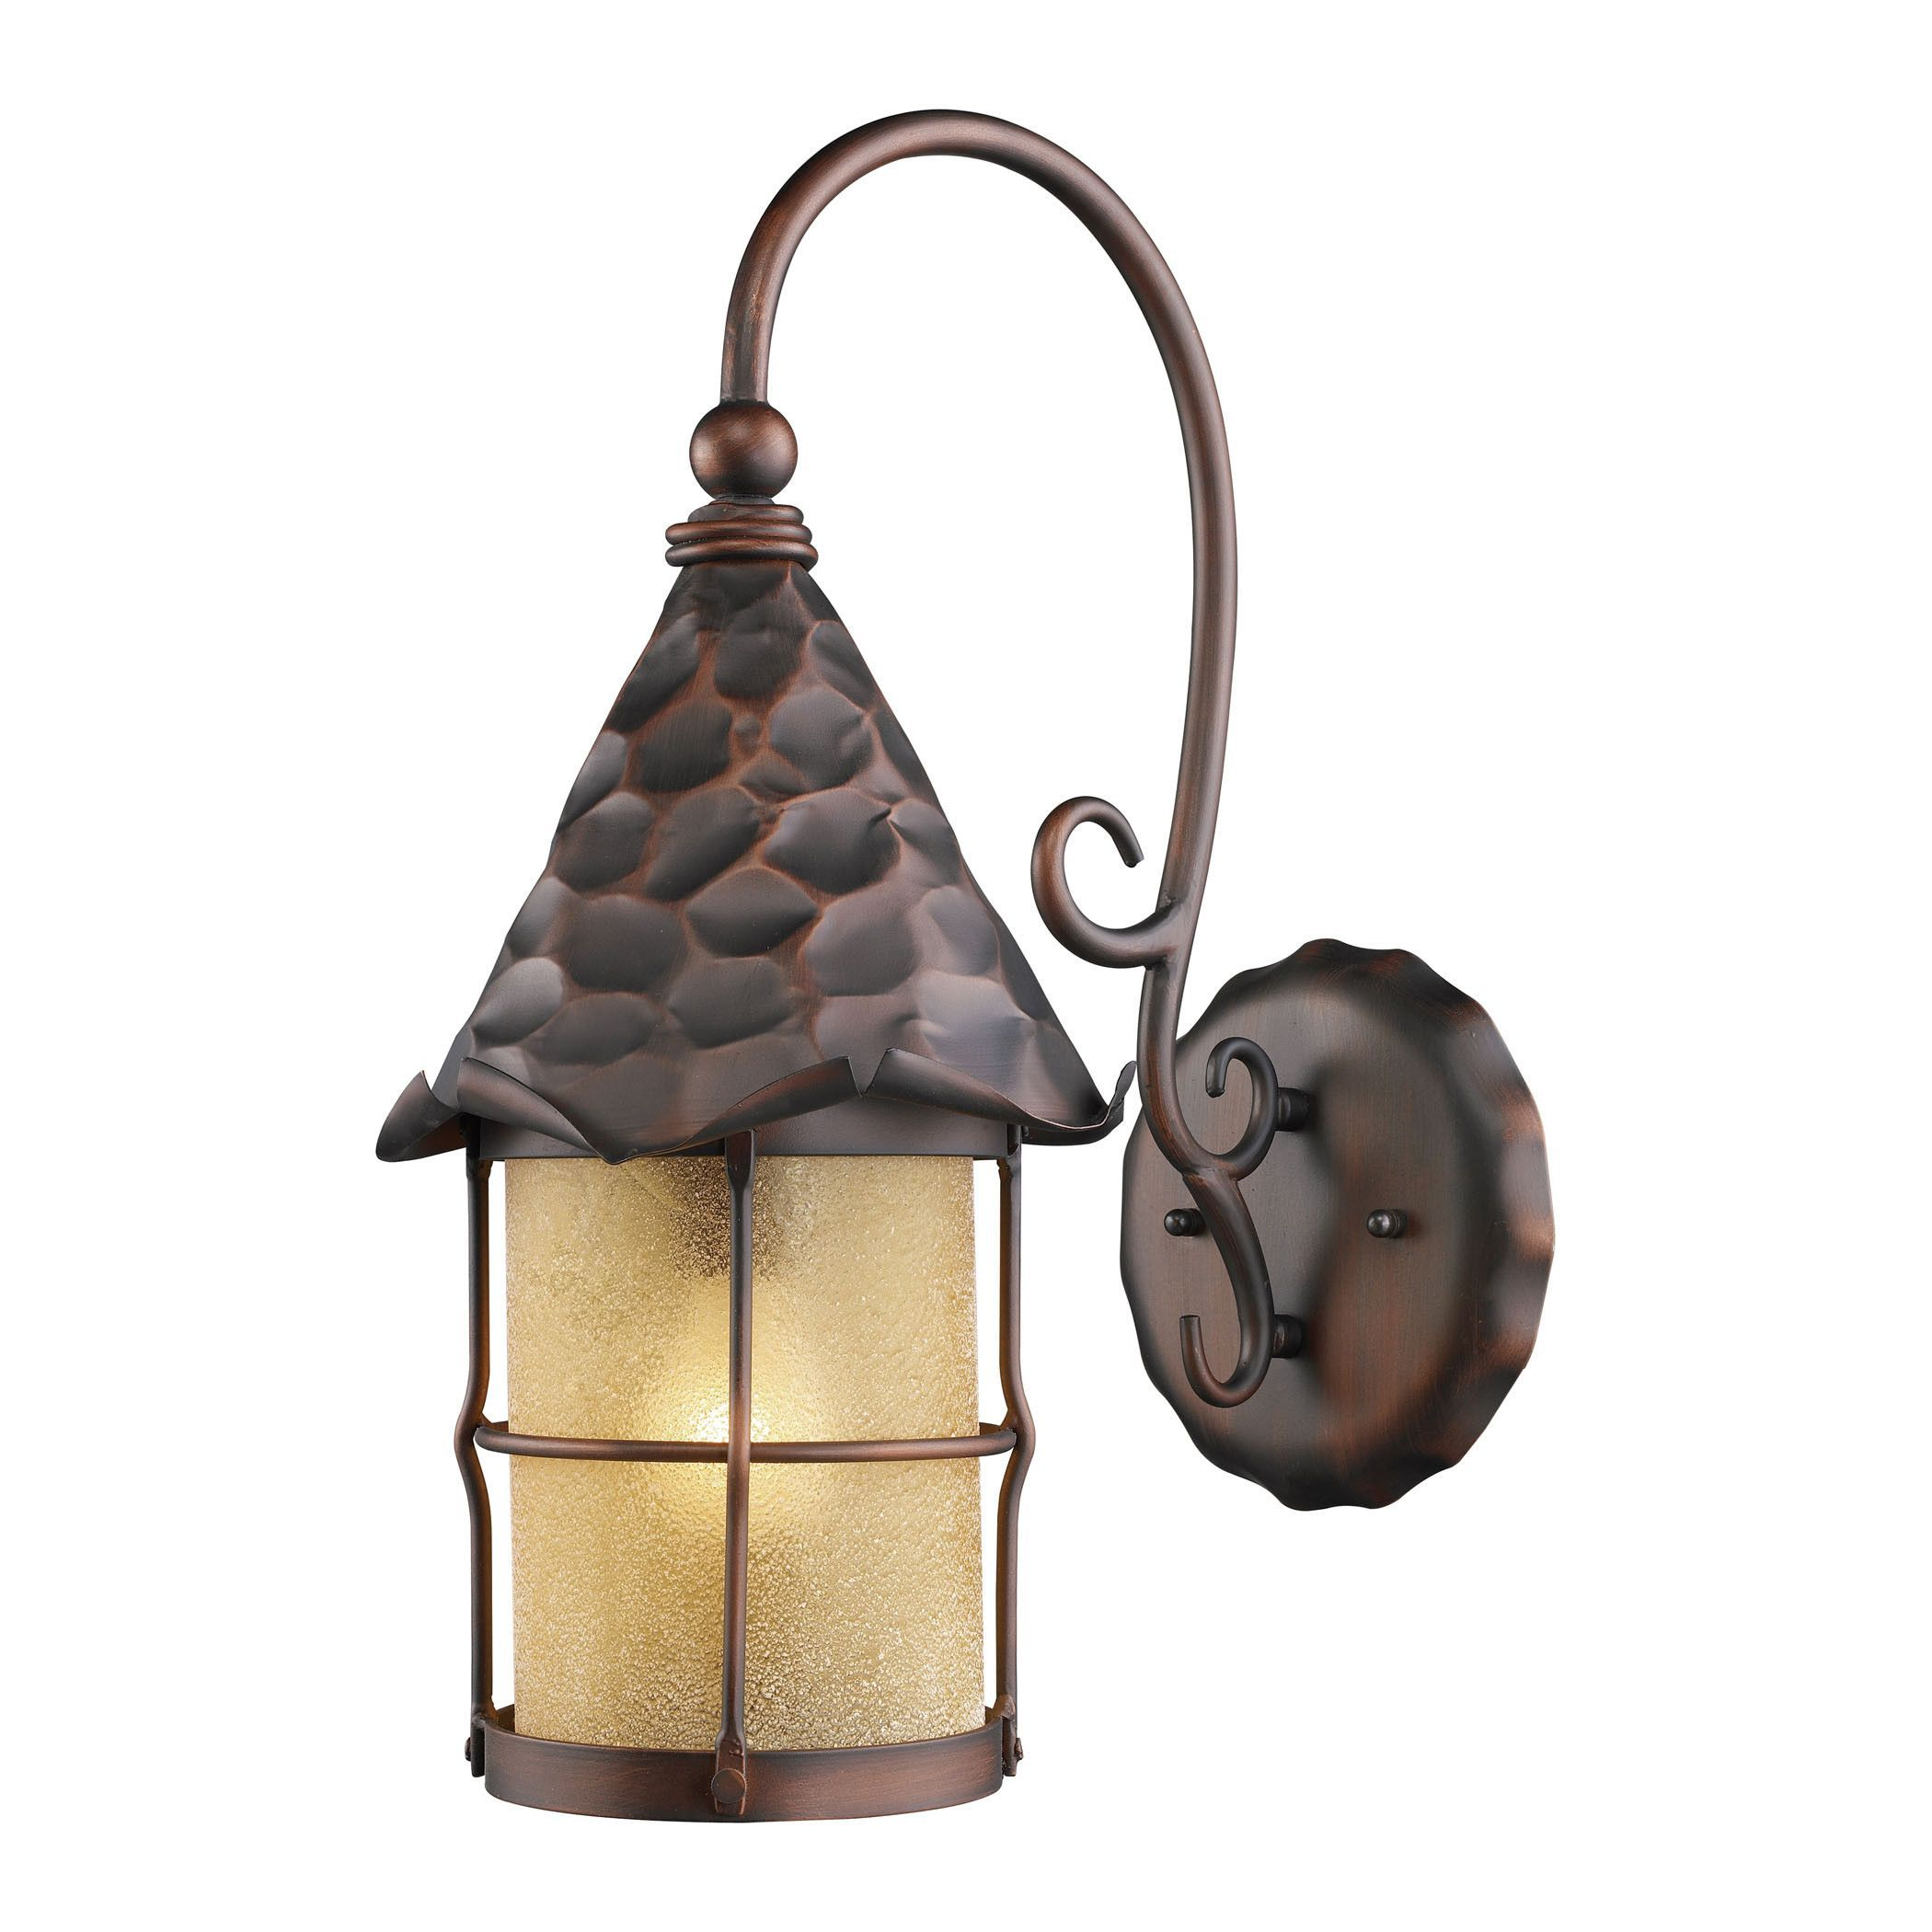 Rustica light outdoor wall sconce in antique copper and amber